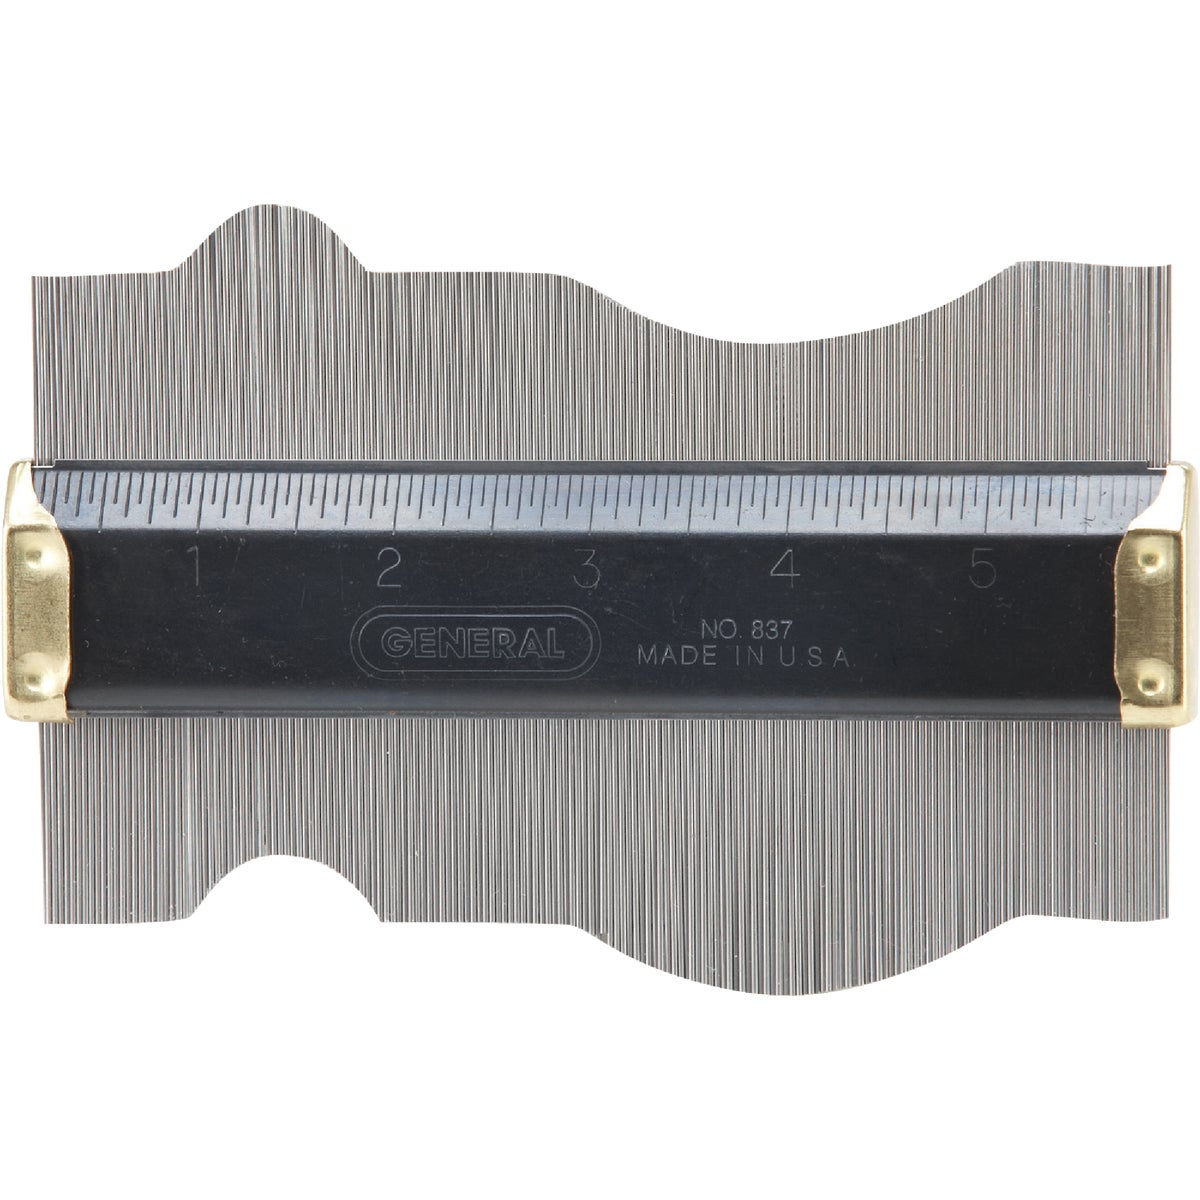 CONTOUR GAUGE - 837 by Gen Tools Mfg